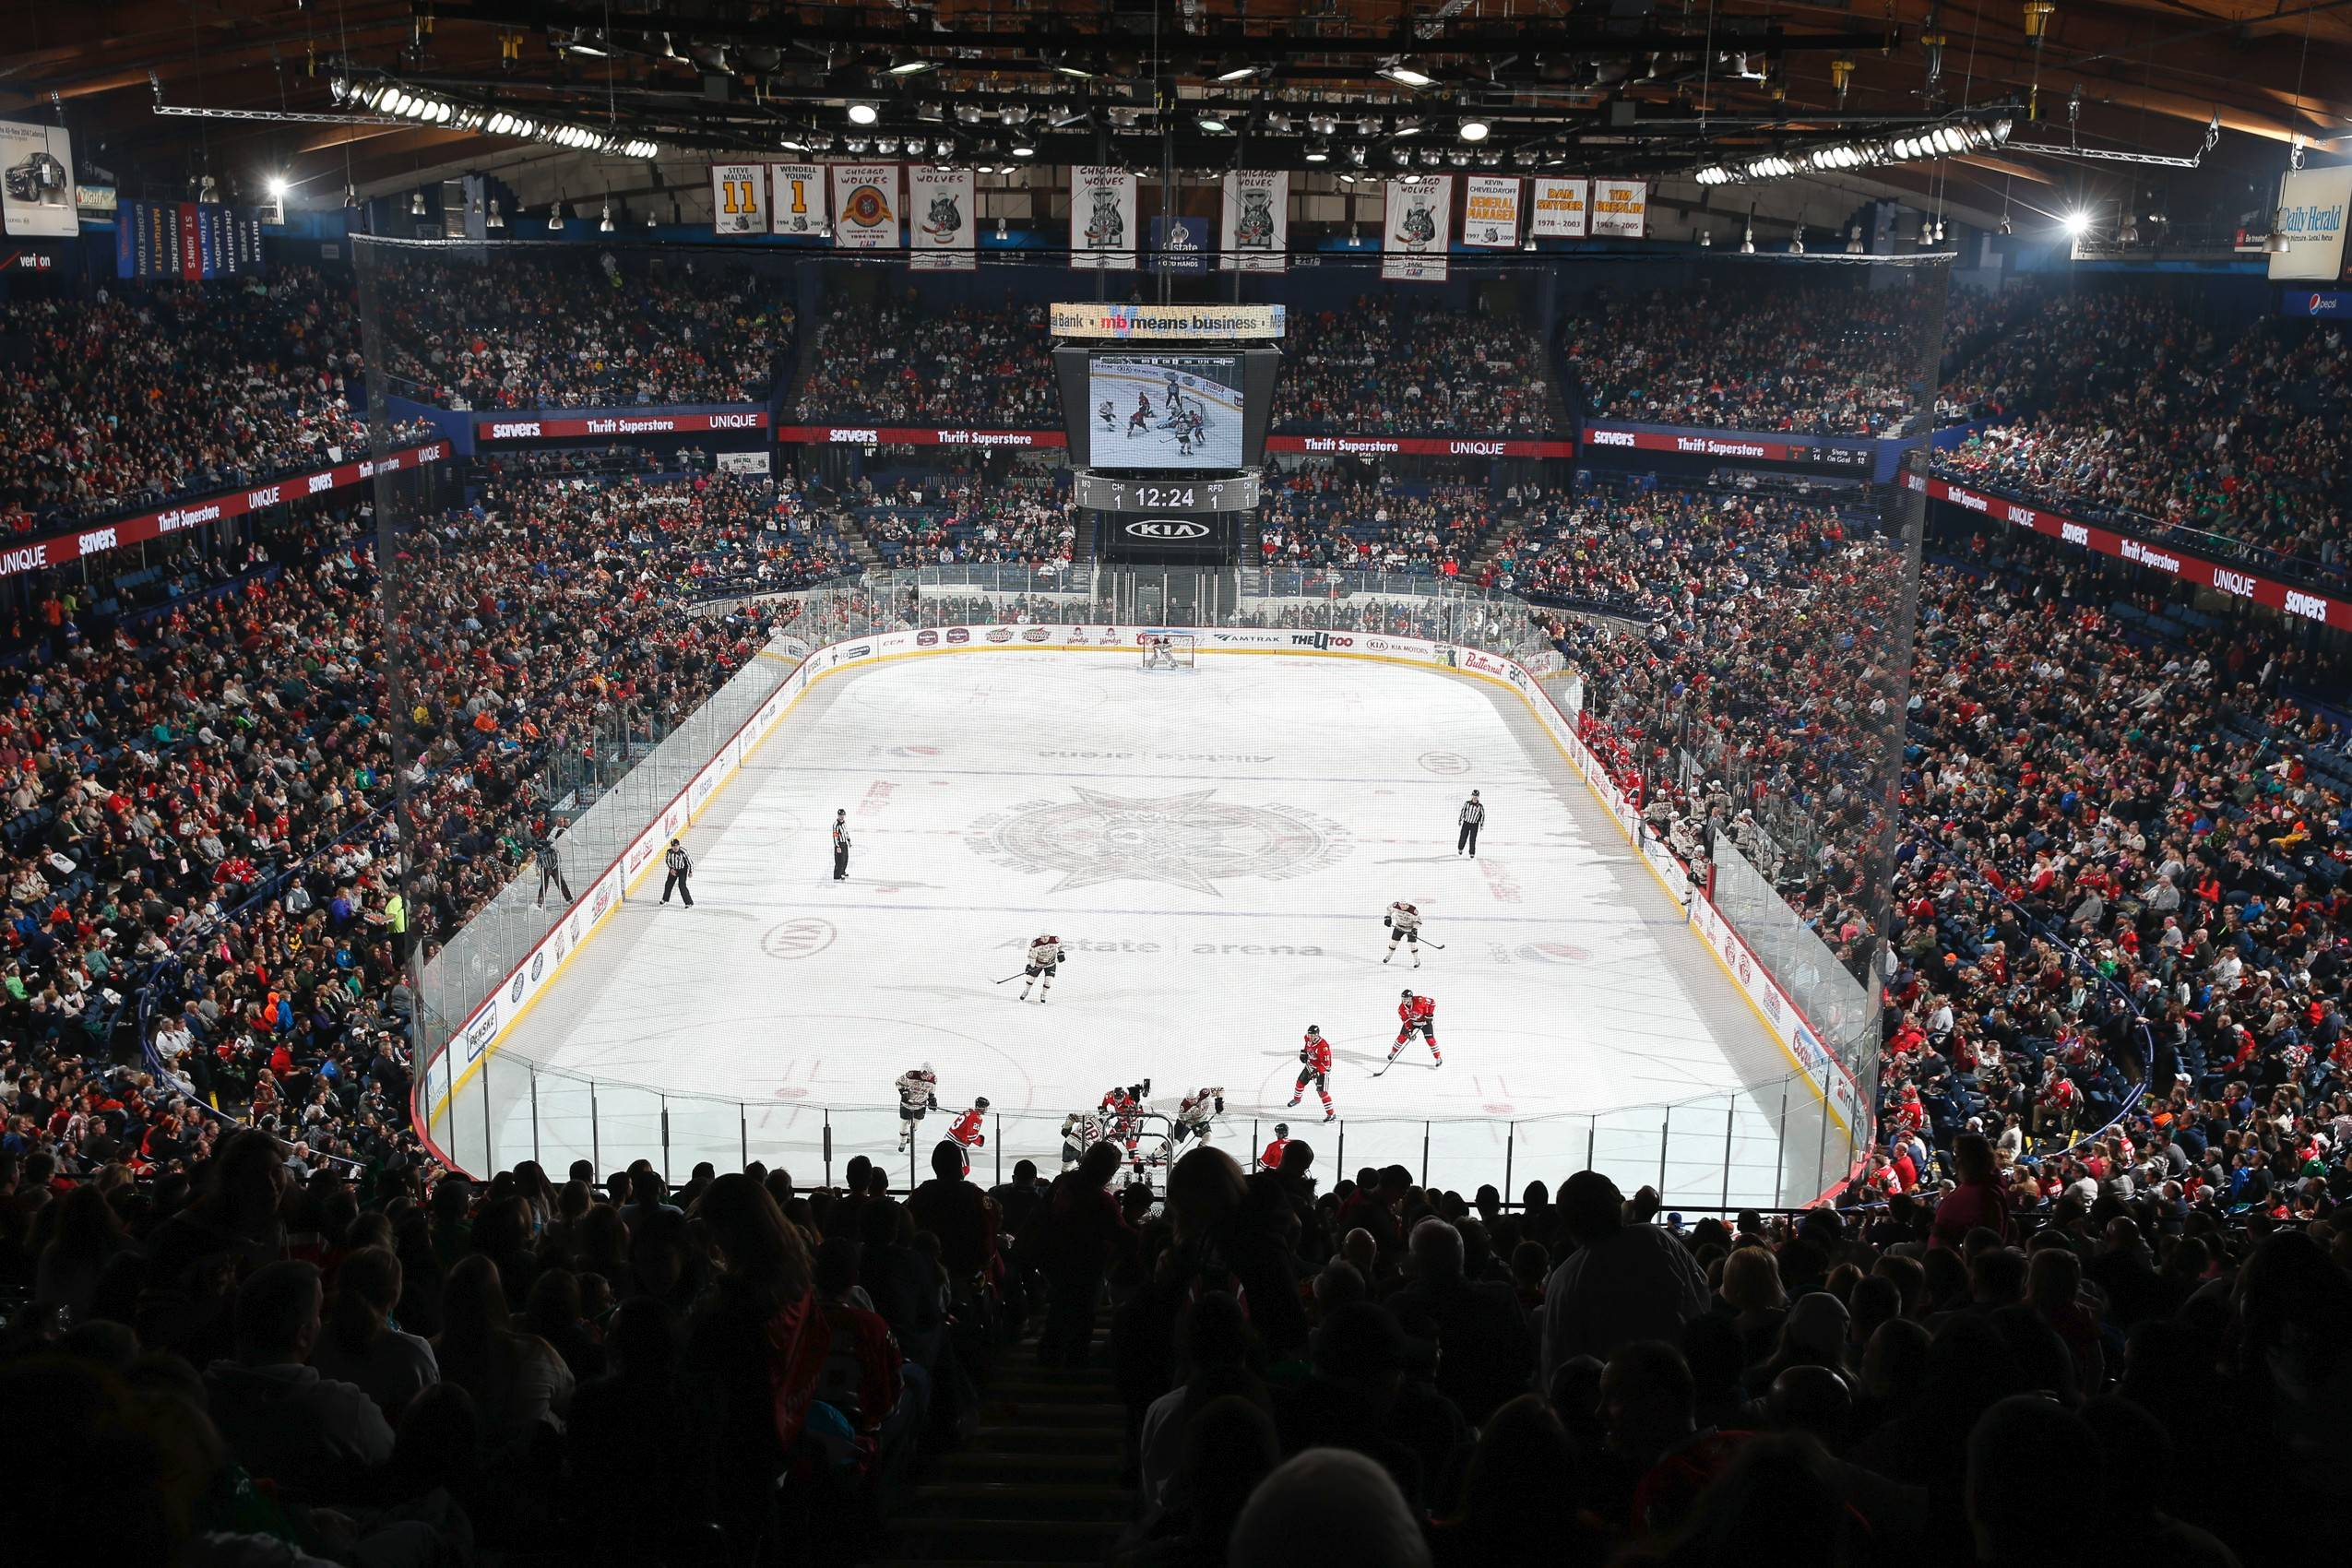 Chicago Wolves to extend Allstate Arena contract for five more years